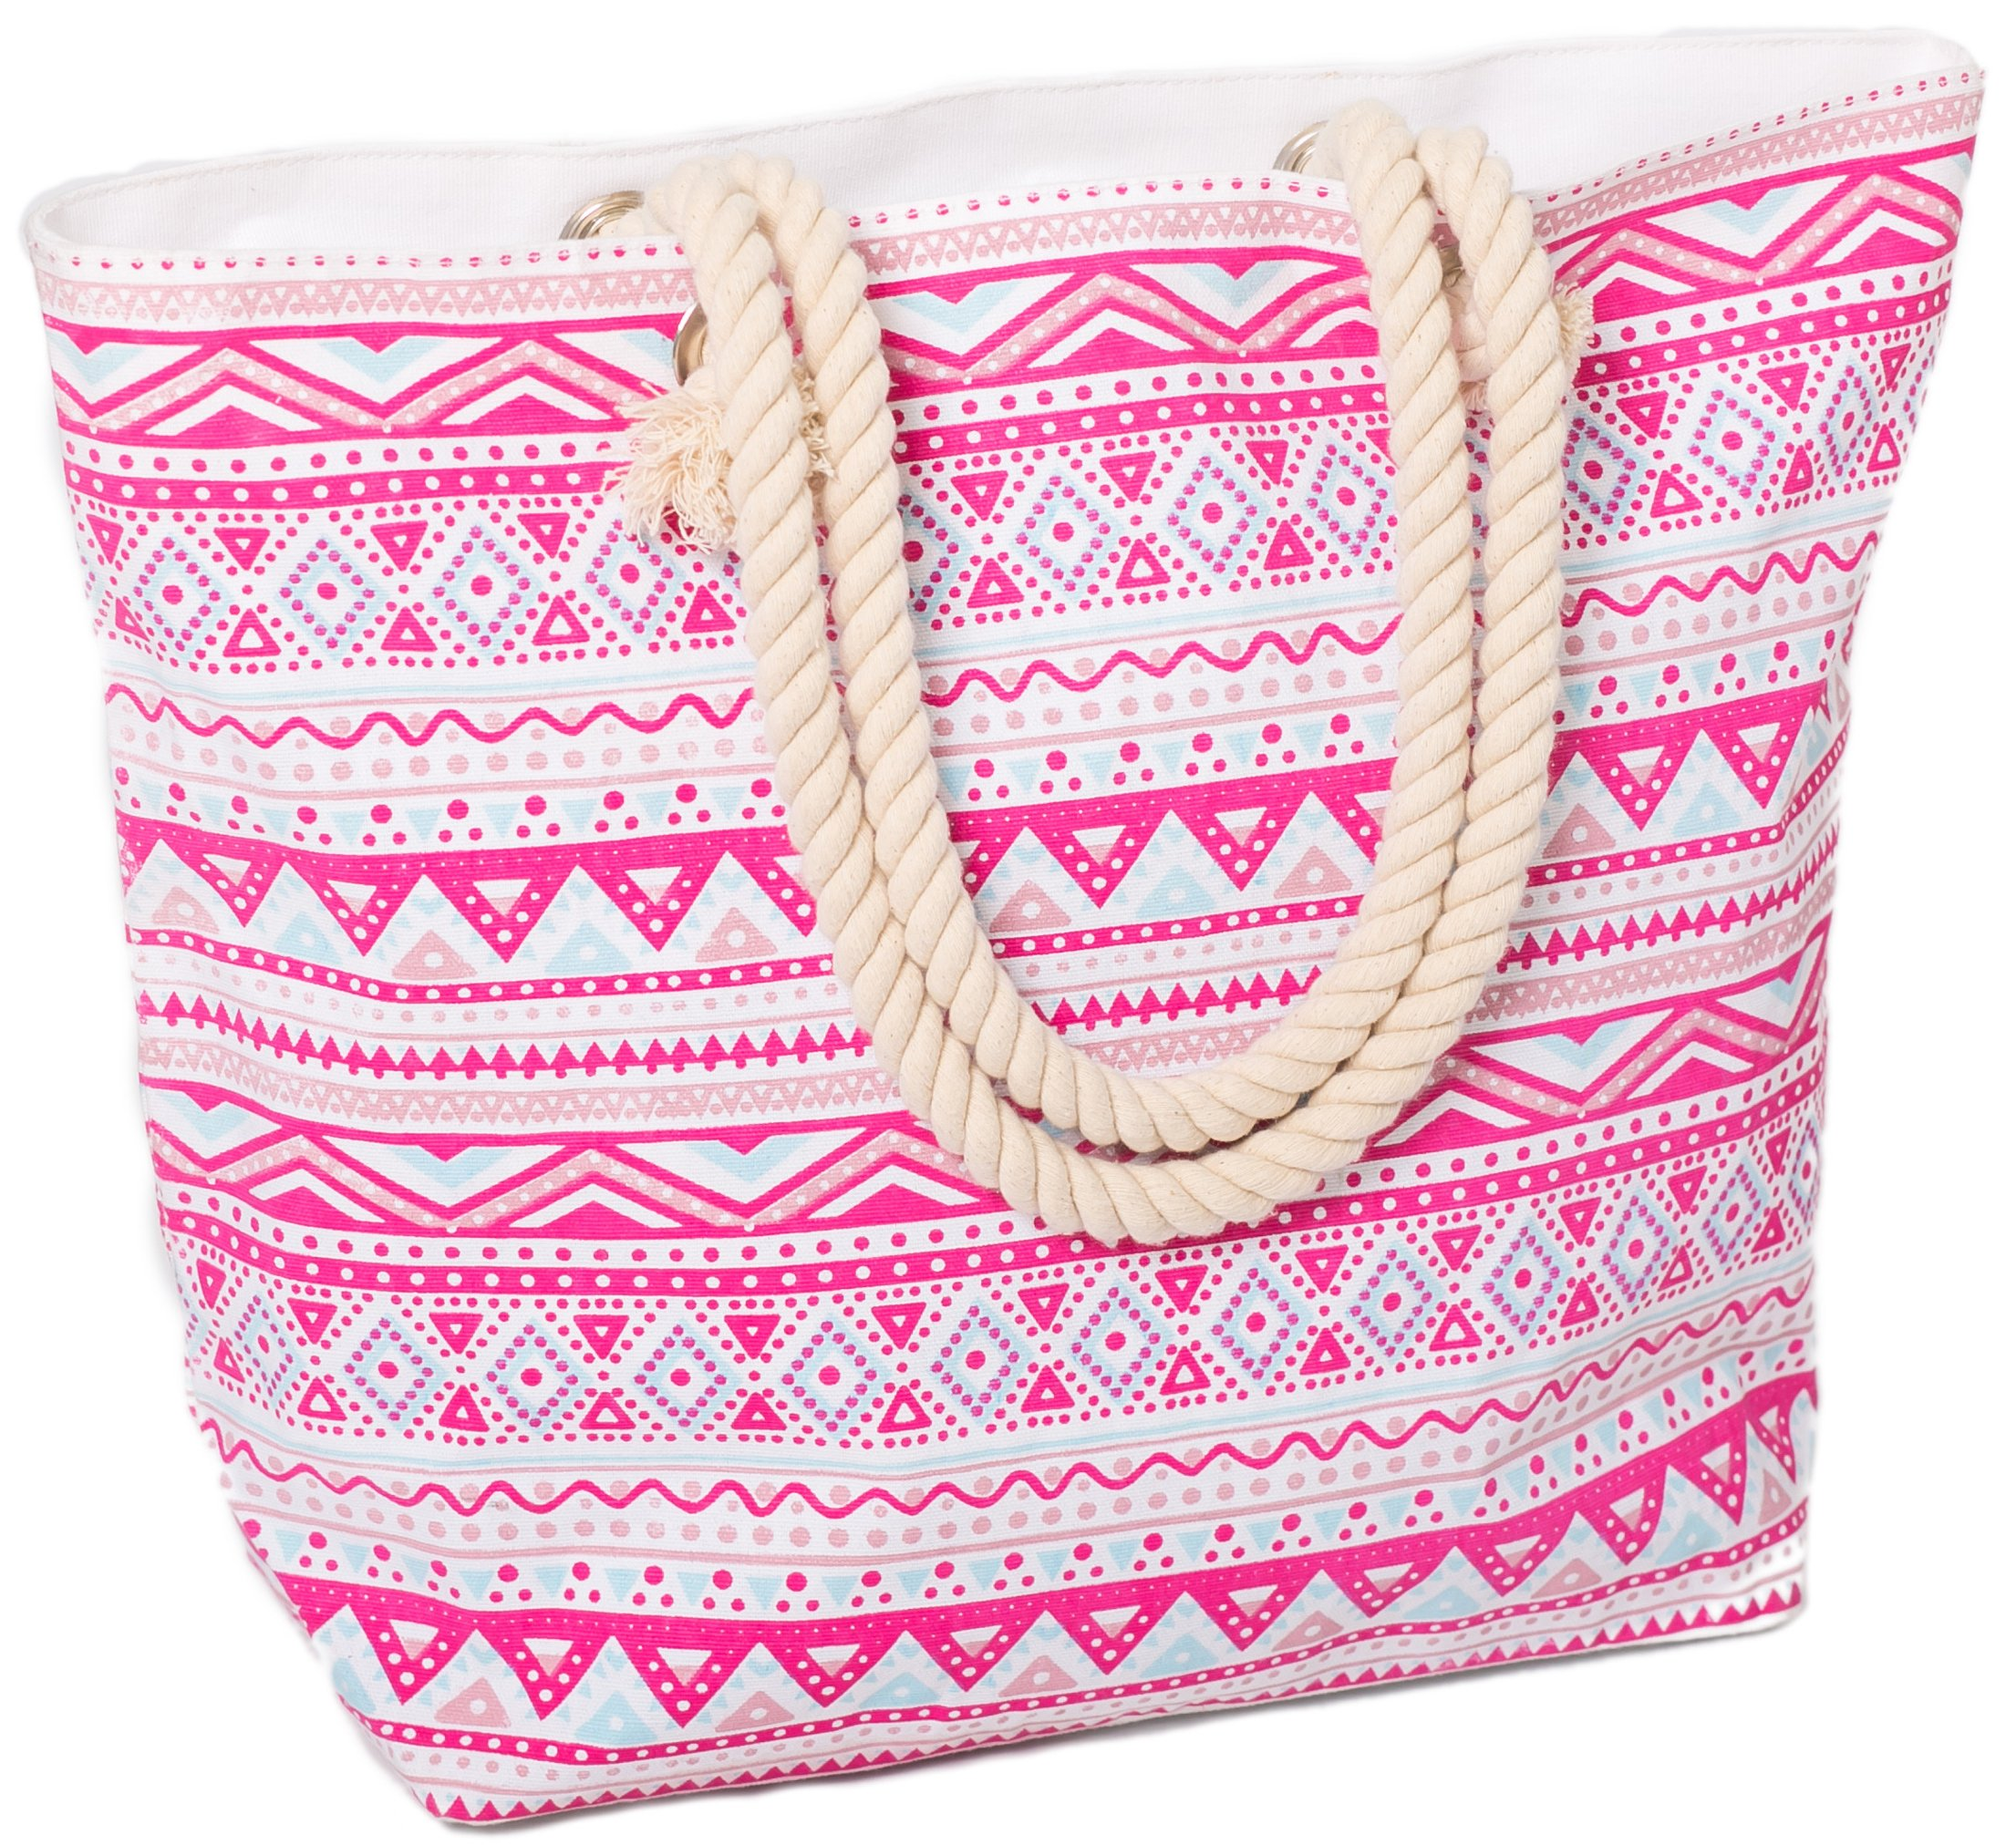 Beach Bag Tote for Women Large Canvas Rope Handles Shoulder Travel Aztec Pattern (Pink)